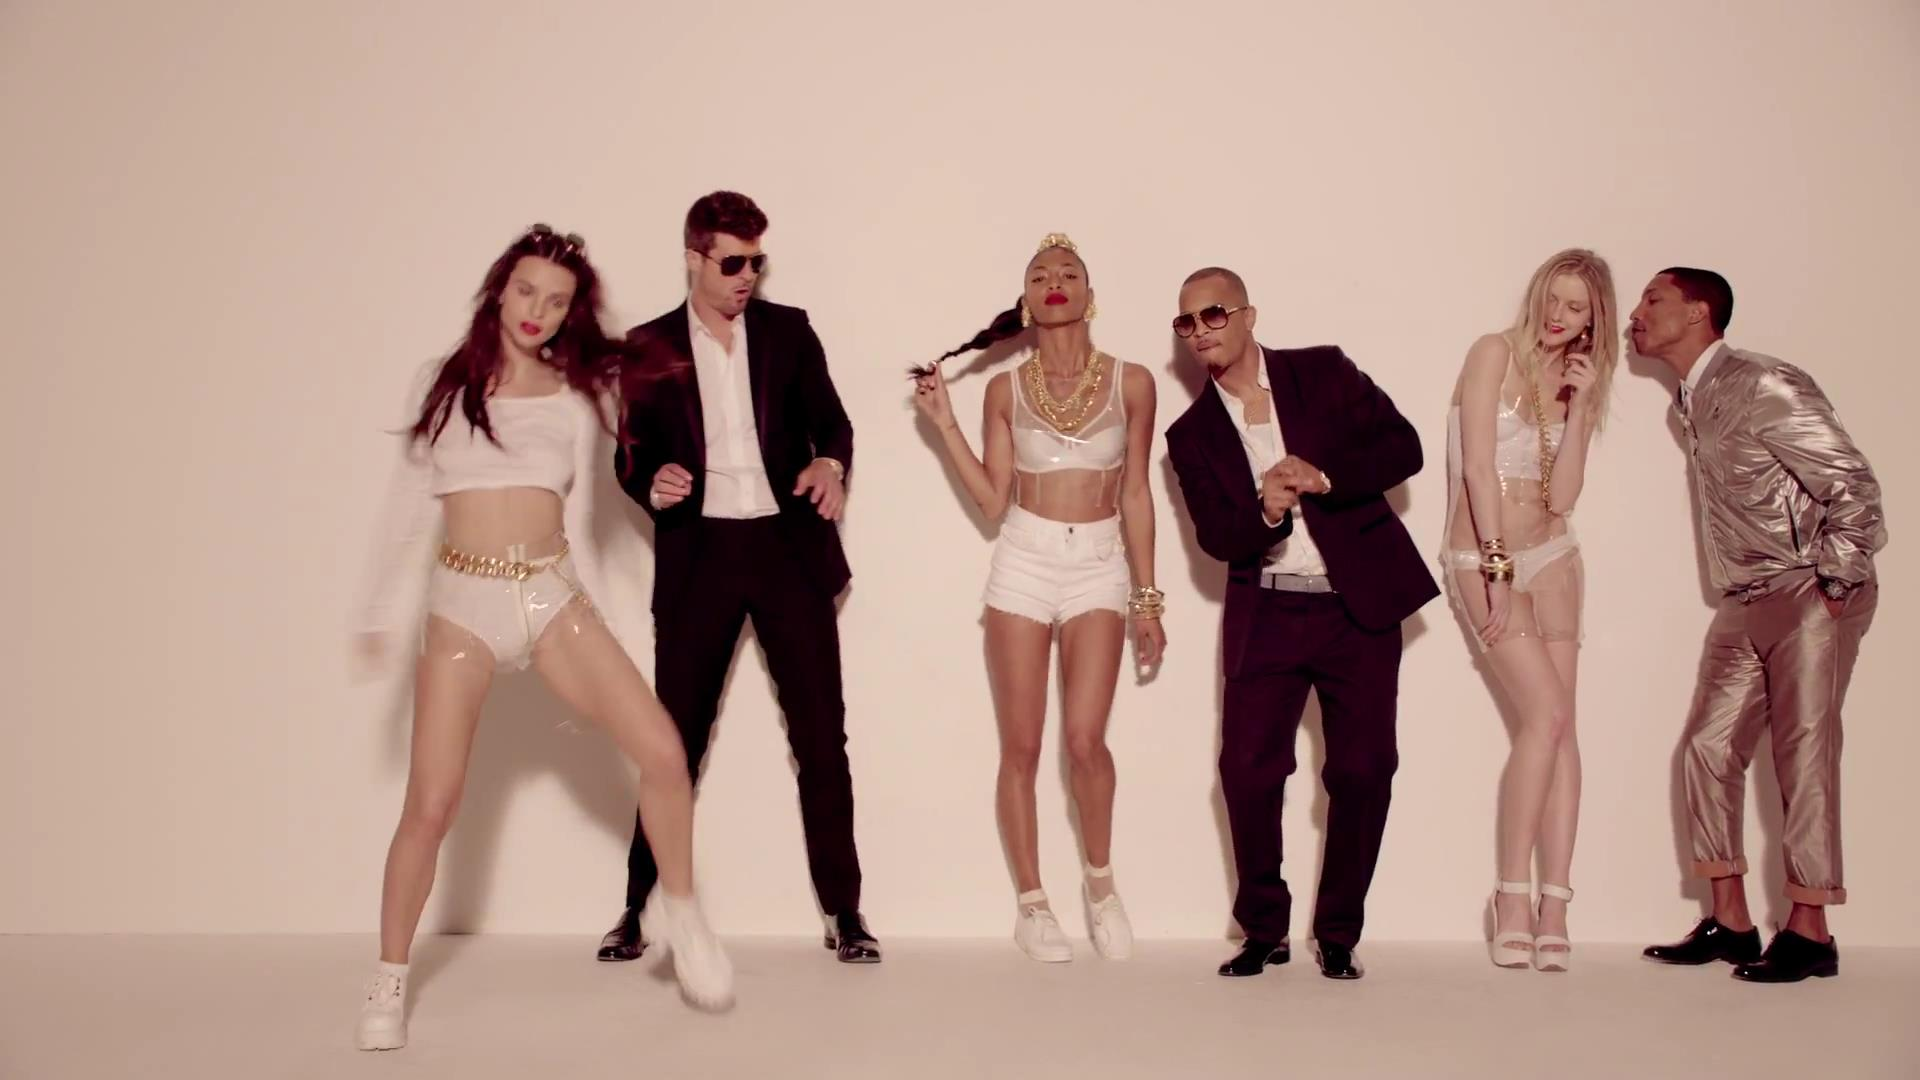 Robin Thicke Blurred Lines feat